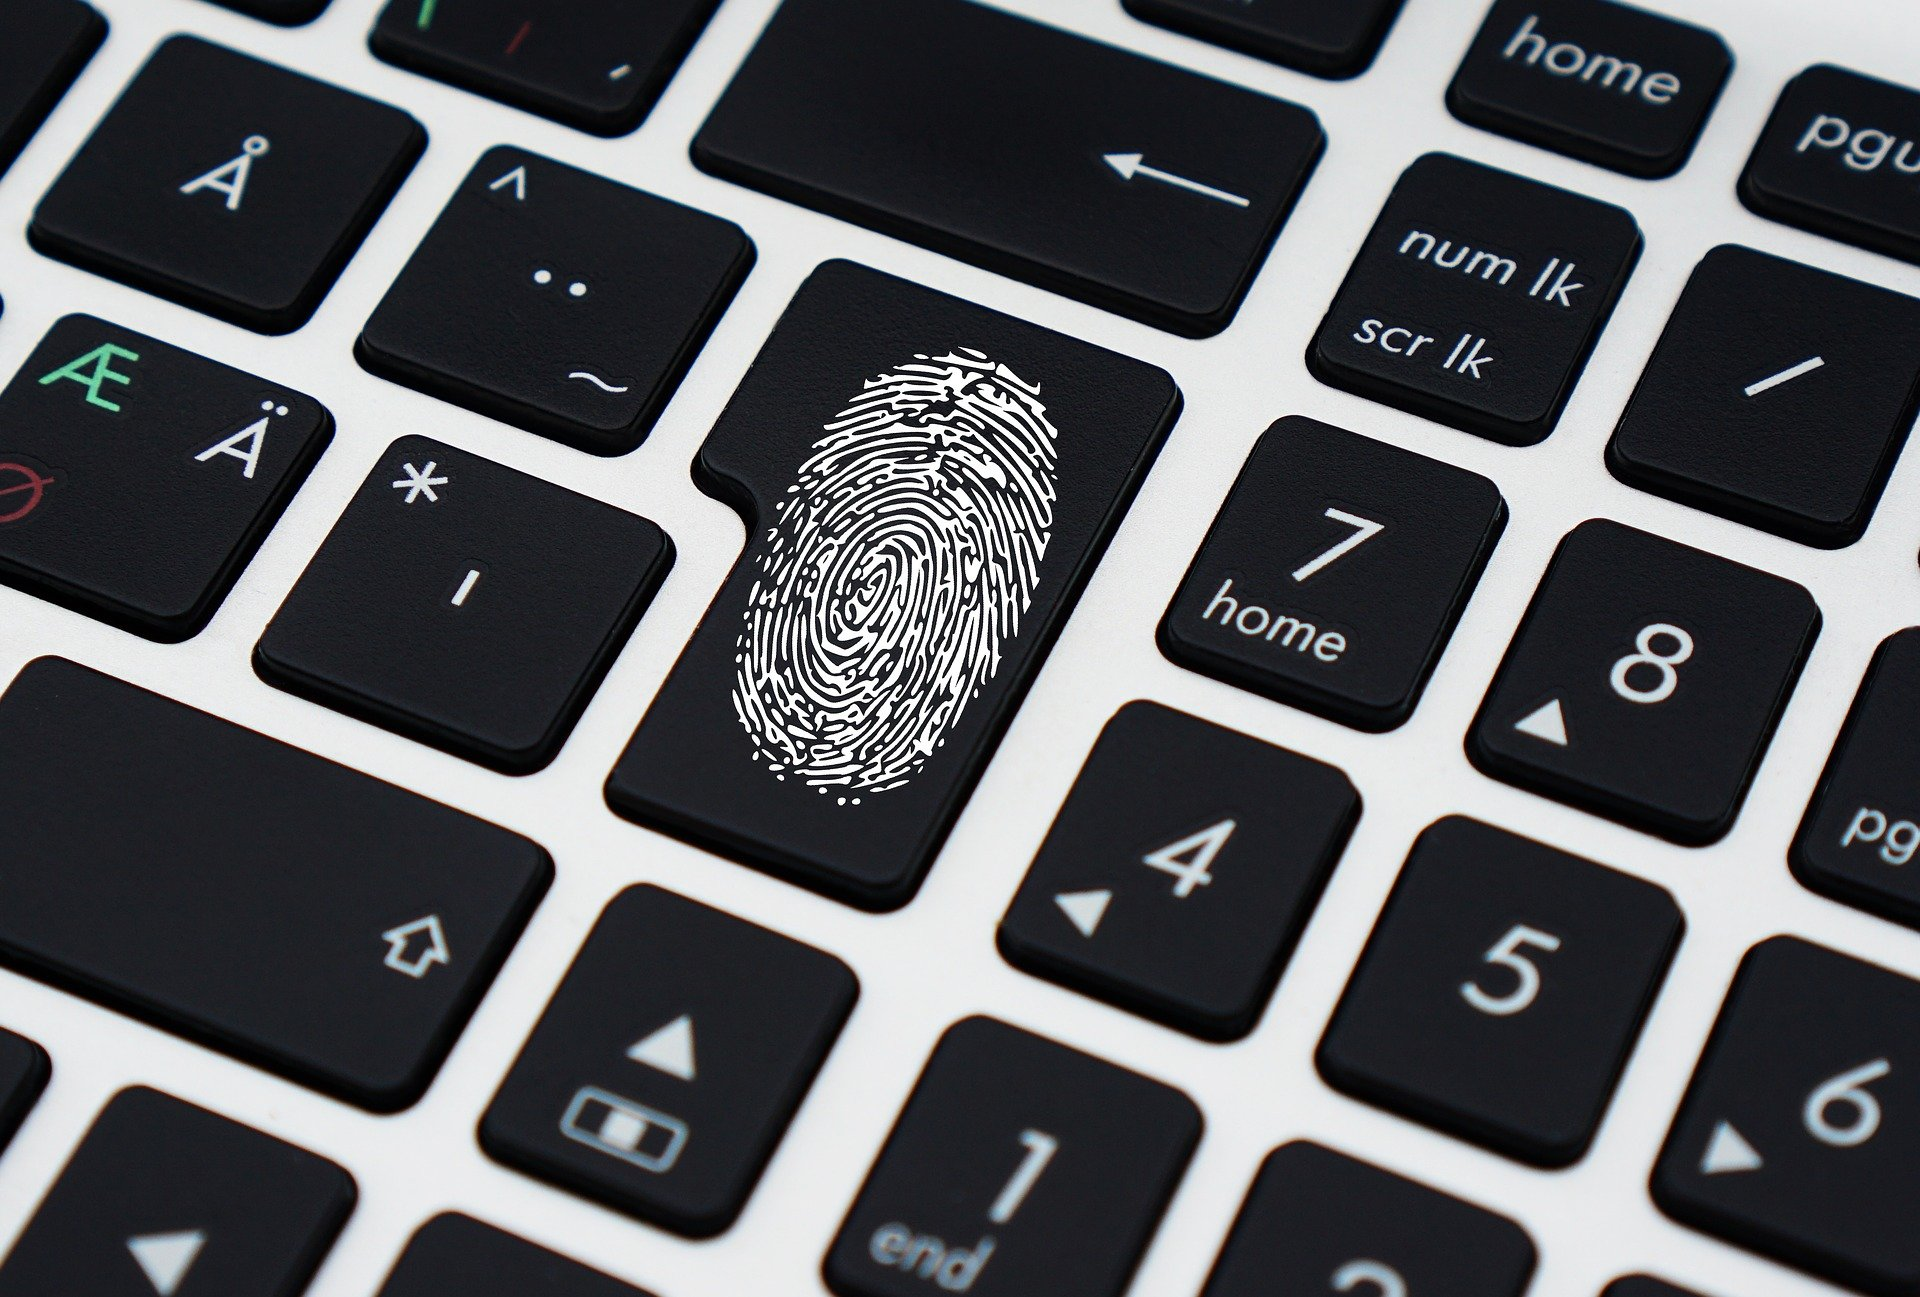 Browser fingerprinting – What is it and how can I protect myself?